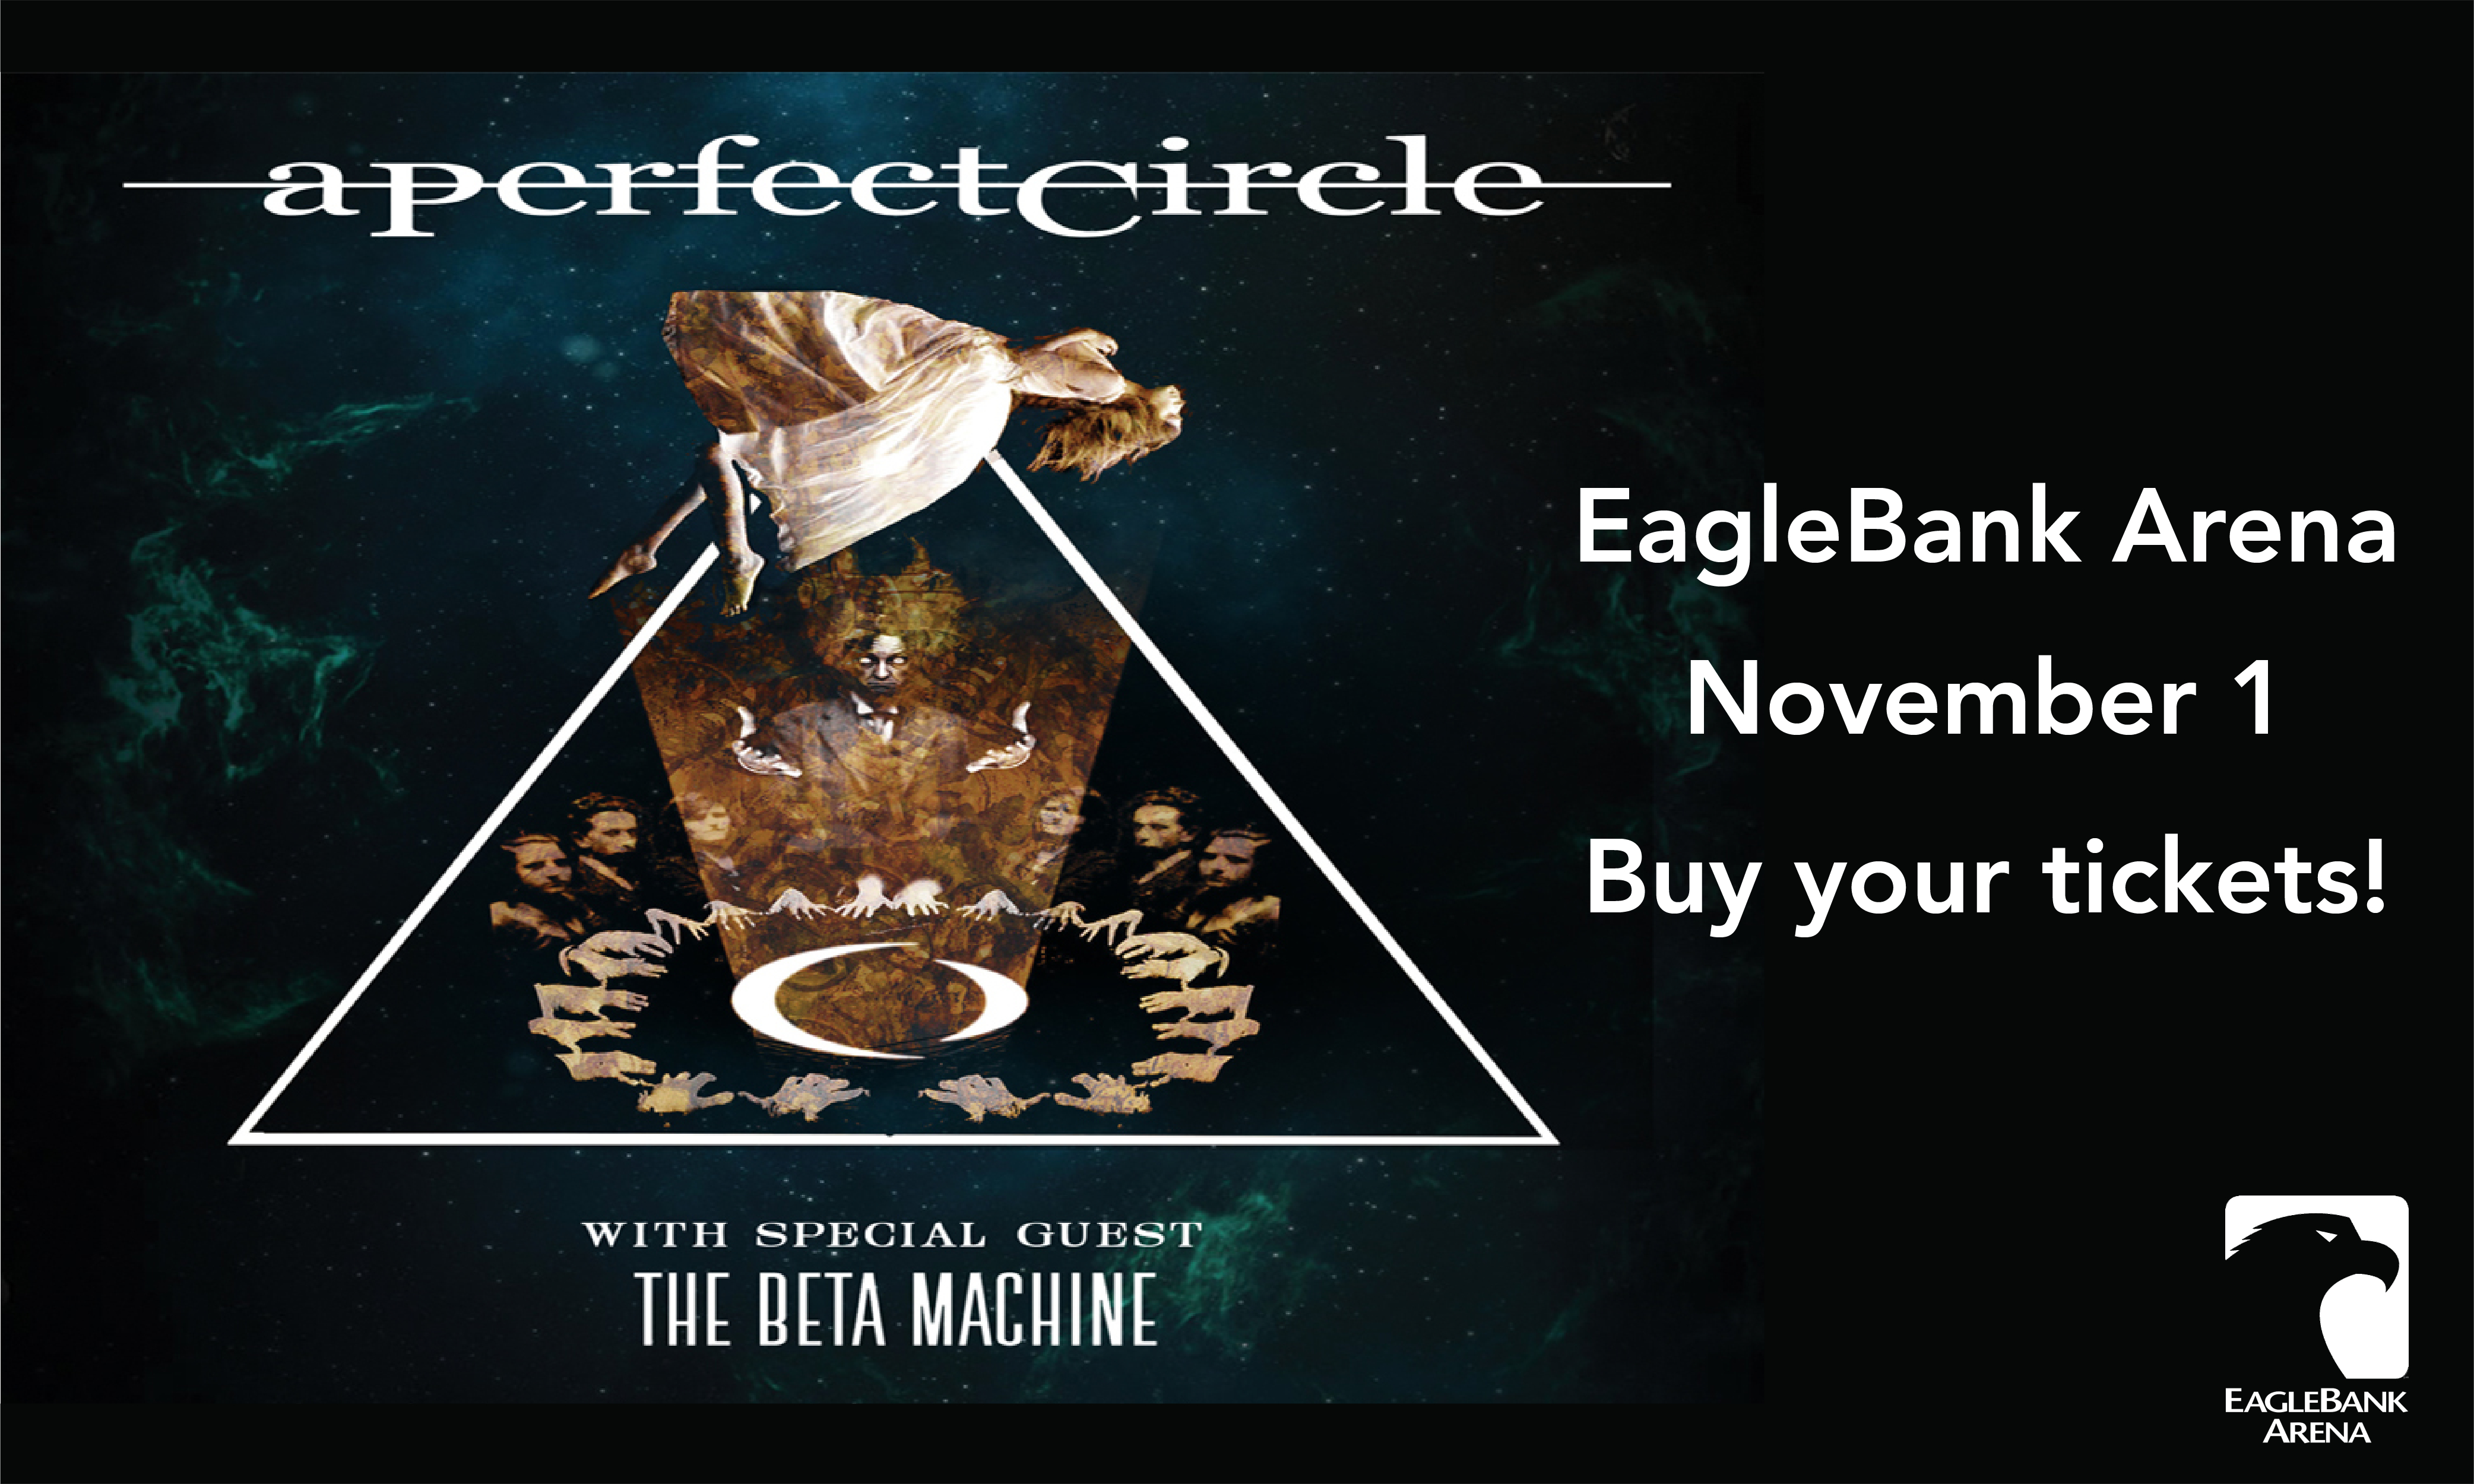 Information regarding A Perfect Circle Concert is as follows Create Your Own Tags: is #shopMason #EagleBankArena and Start date (when you would like your content to be posted) is October 13 2017 and End Date  (when you would like your content to be removed from the screens) is November 01 2017 and Name of Ad/Event is A Perfect Circle Concert and File is Browse and File Name is a_perfect_circle_promo-01_comp.jpg and Panel for your ad to be displayed is Main and Affiliation is Mason Department and Name is Nhi Nguyen and Email is nnguye@gmu.edu and Group Name is shopMason and